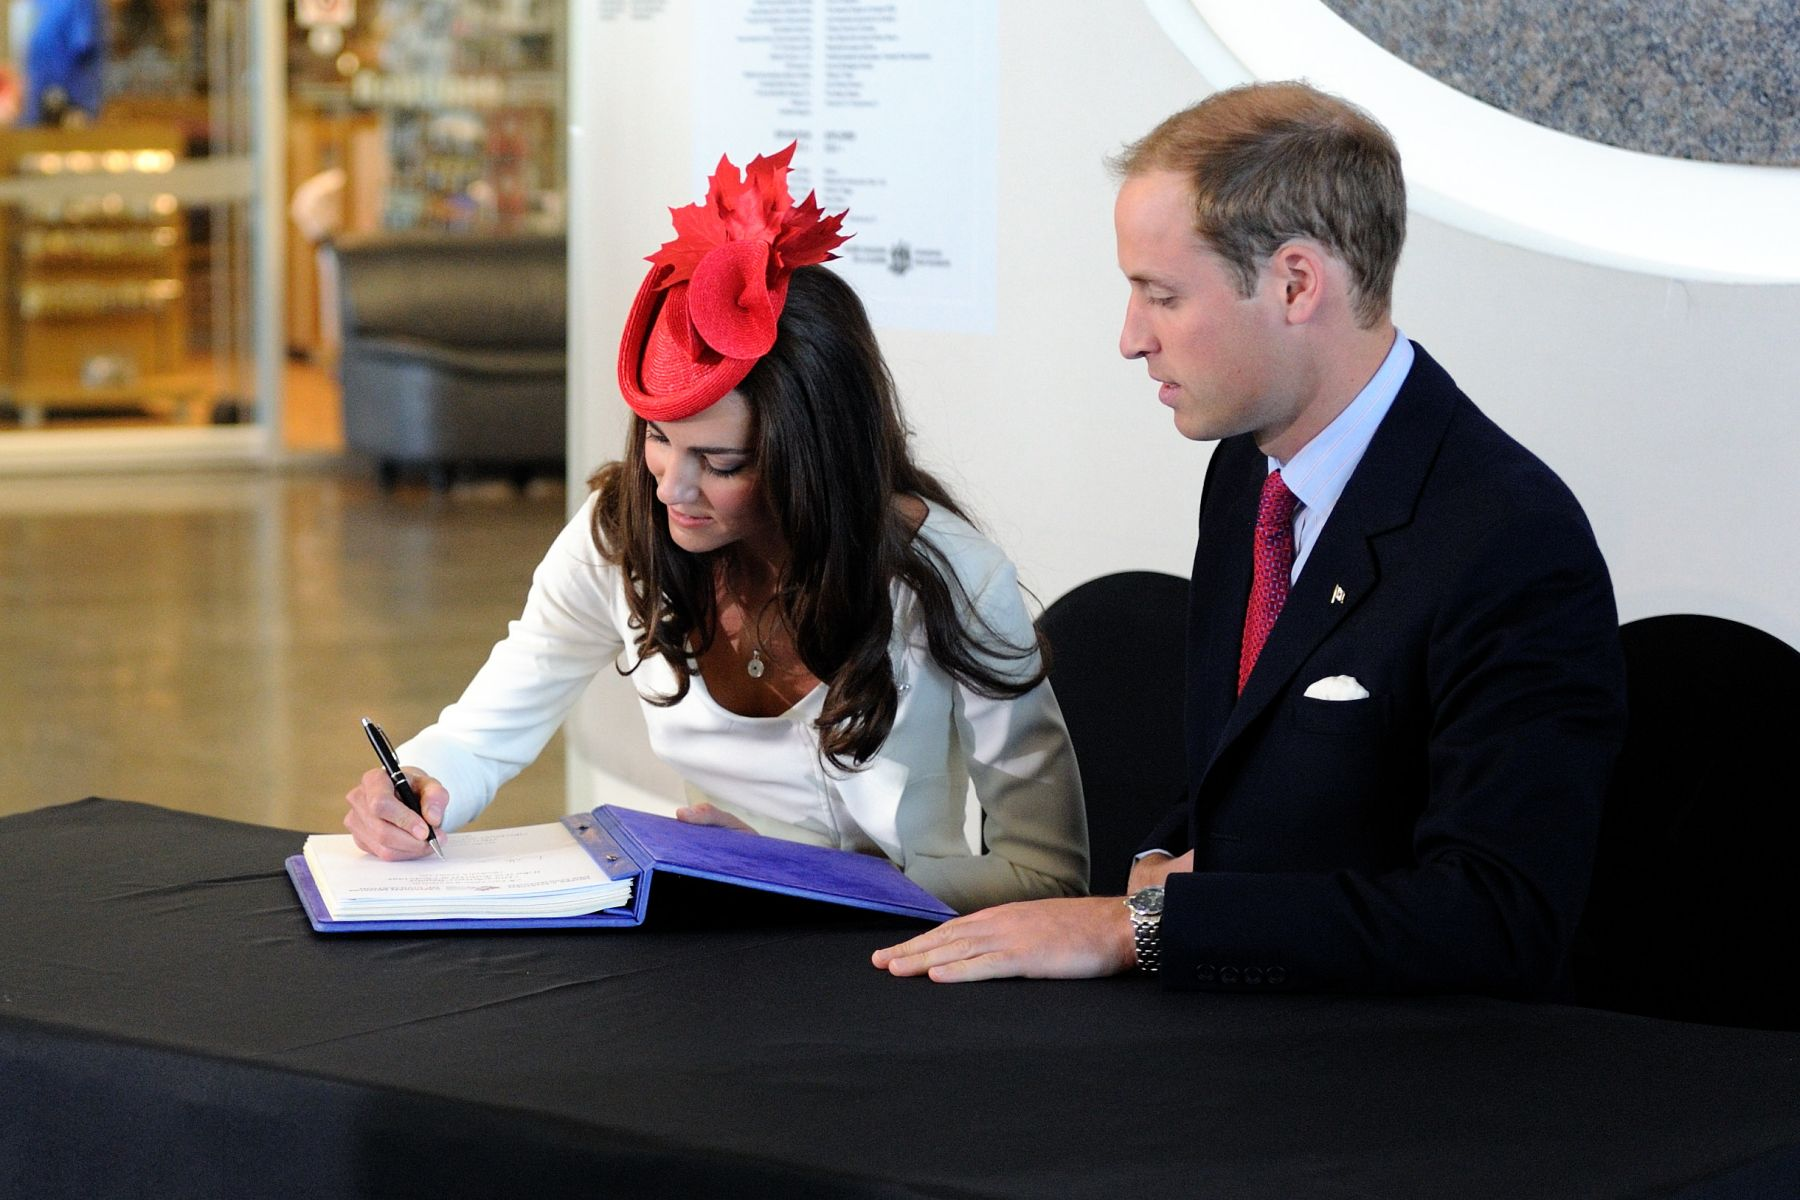 Before leaving the Canadian Museum of Civilisations, Their Royal Highnesses signed the guest book.